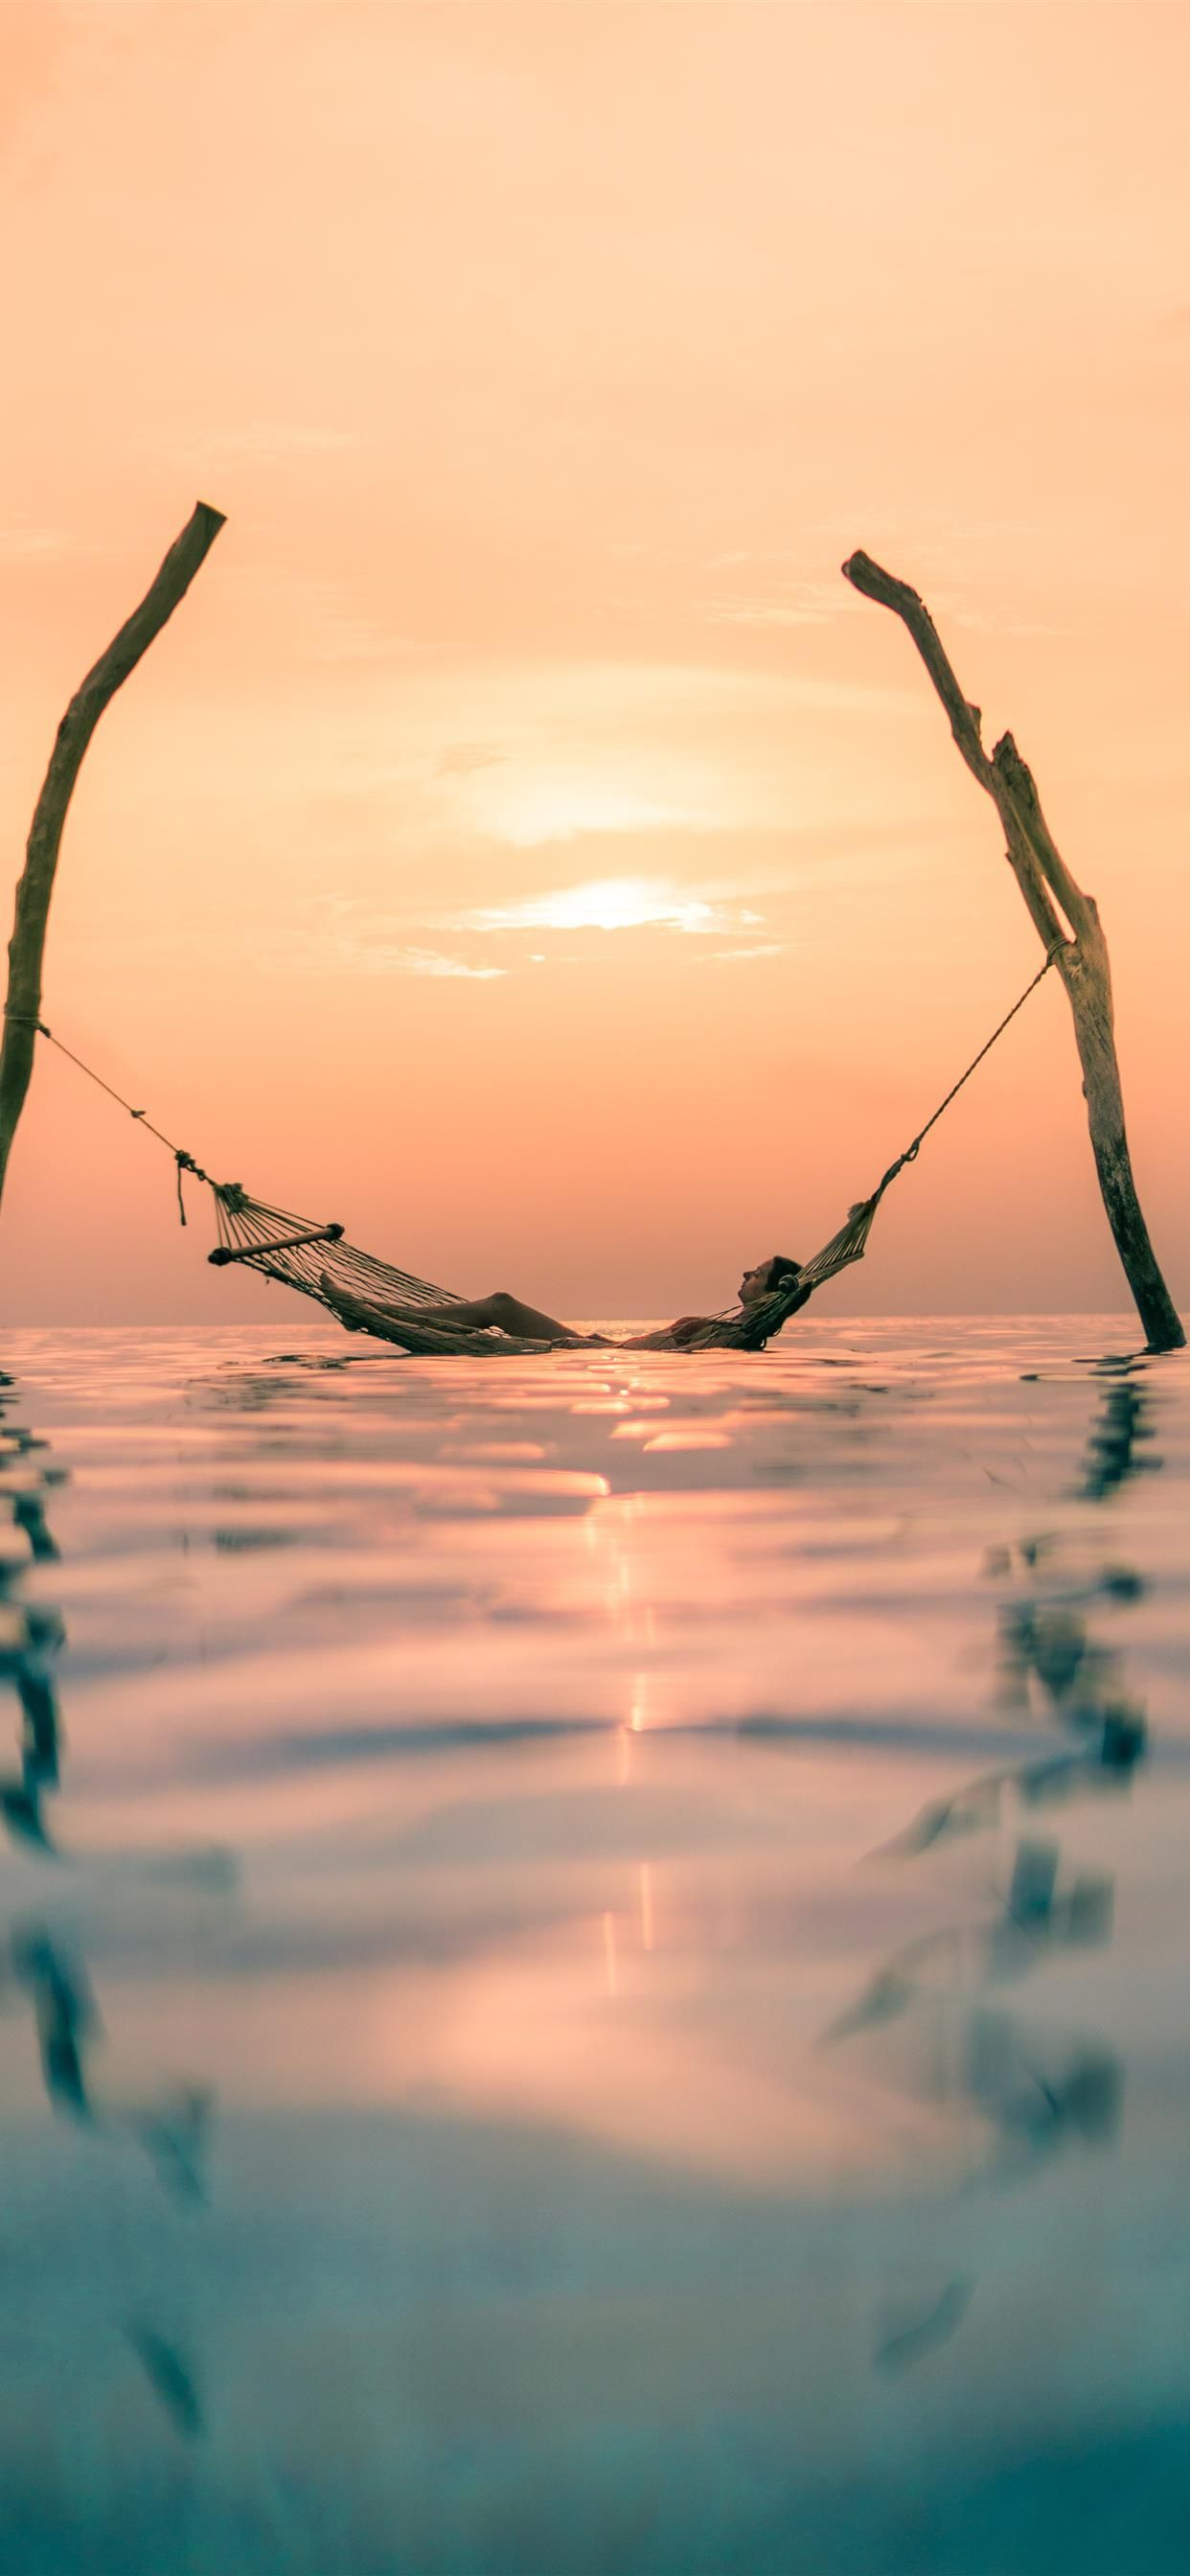 Relaxing iPhone Wallpapers - Top Free Relaxing iPhone ...